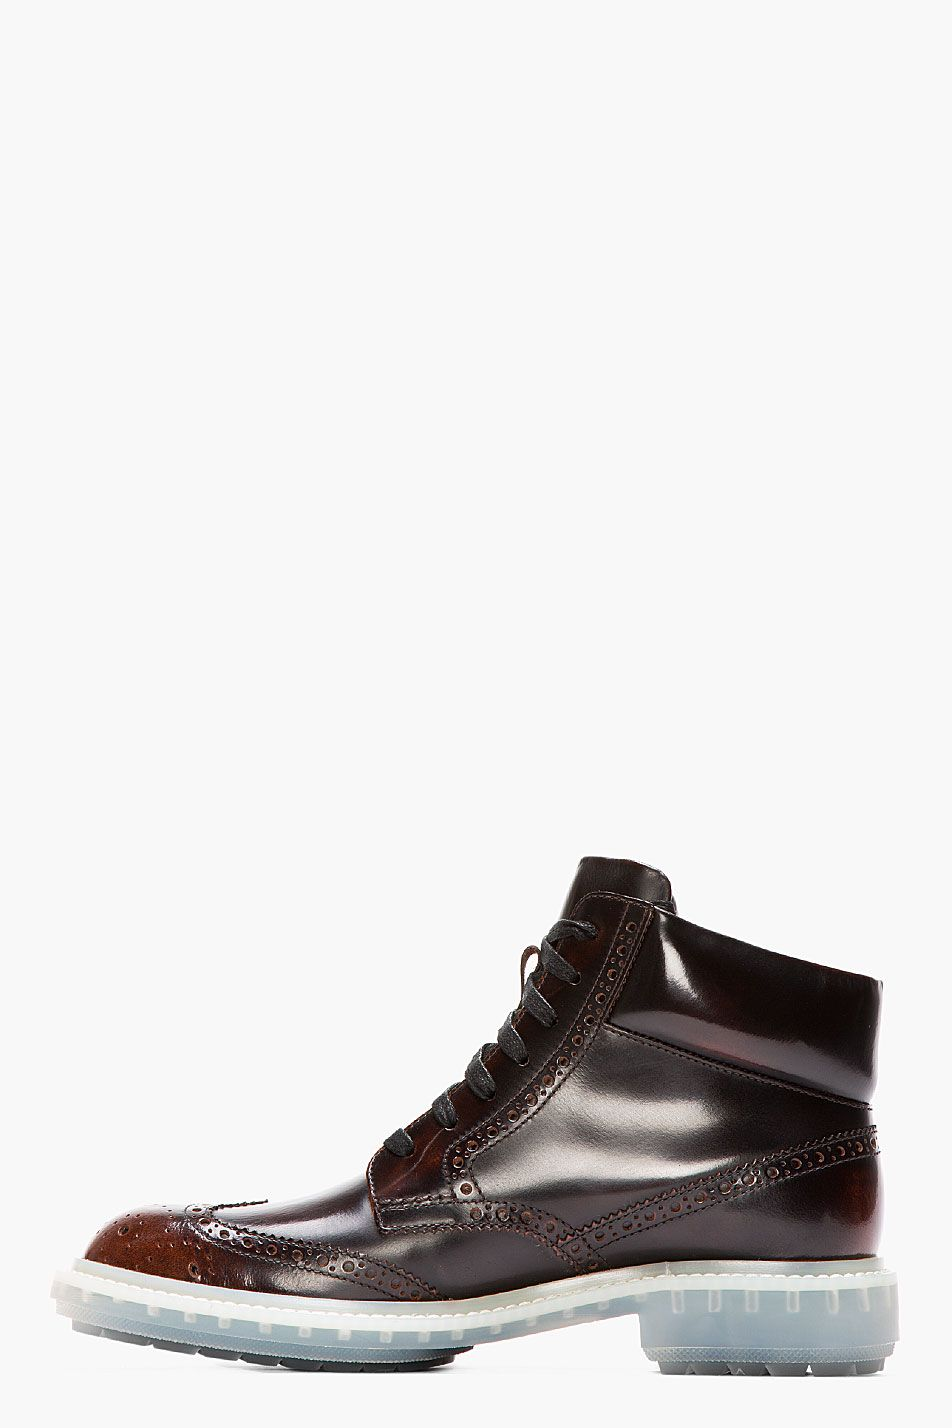 Marque Brogues homme find Smart Leather